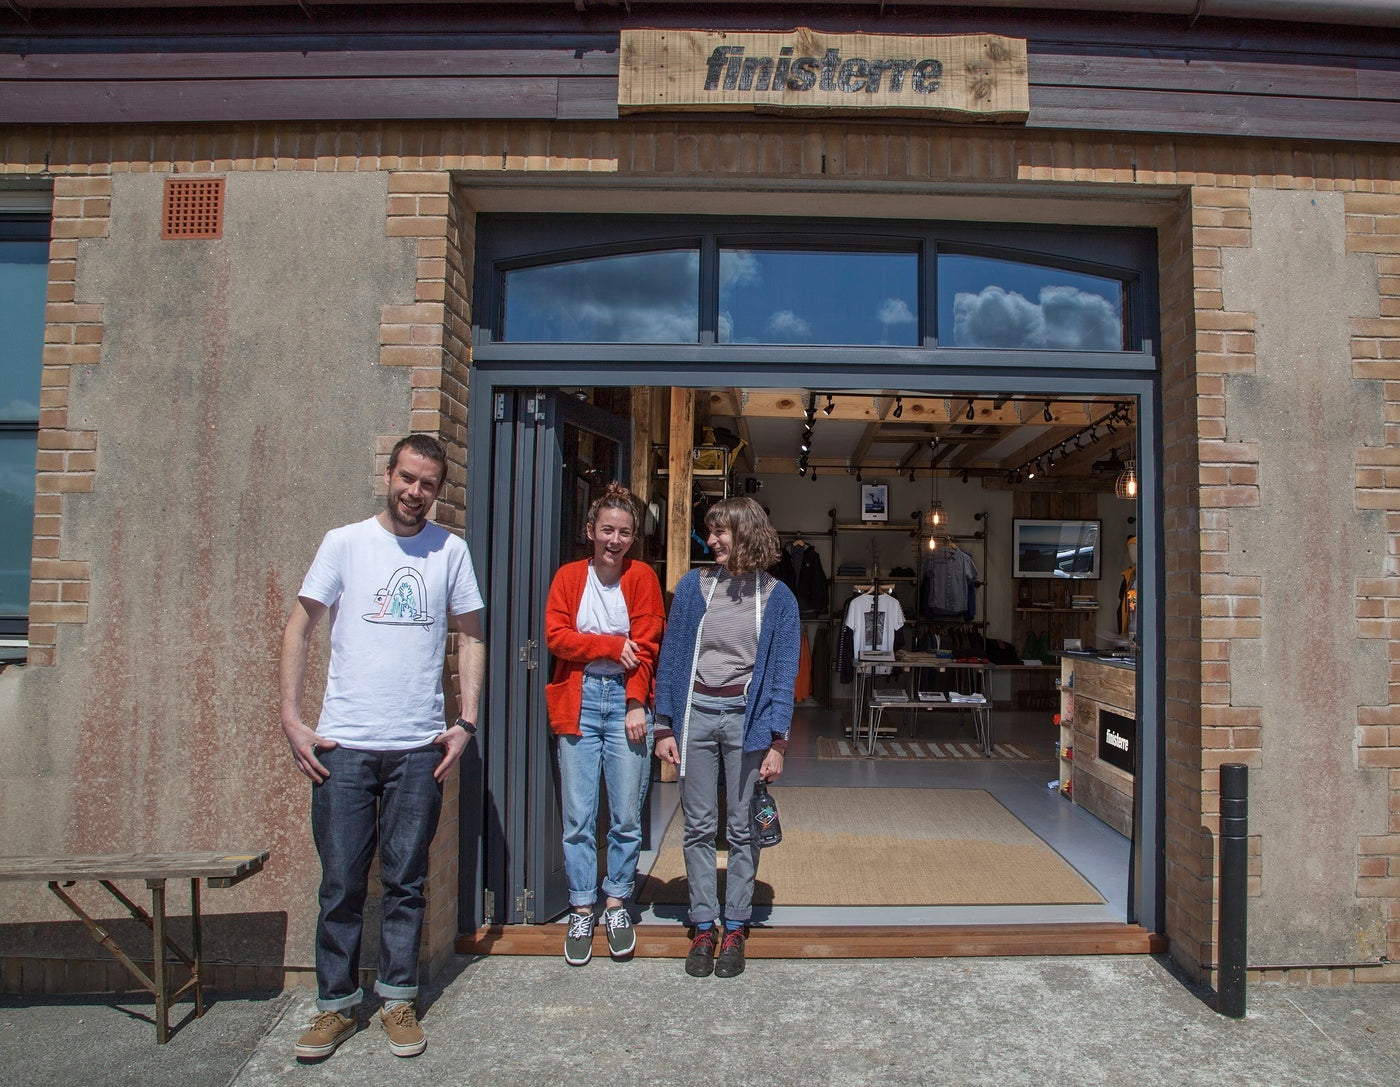 Jasper and the Finisterre St Agnes Store smiling in front of the shop entrance